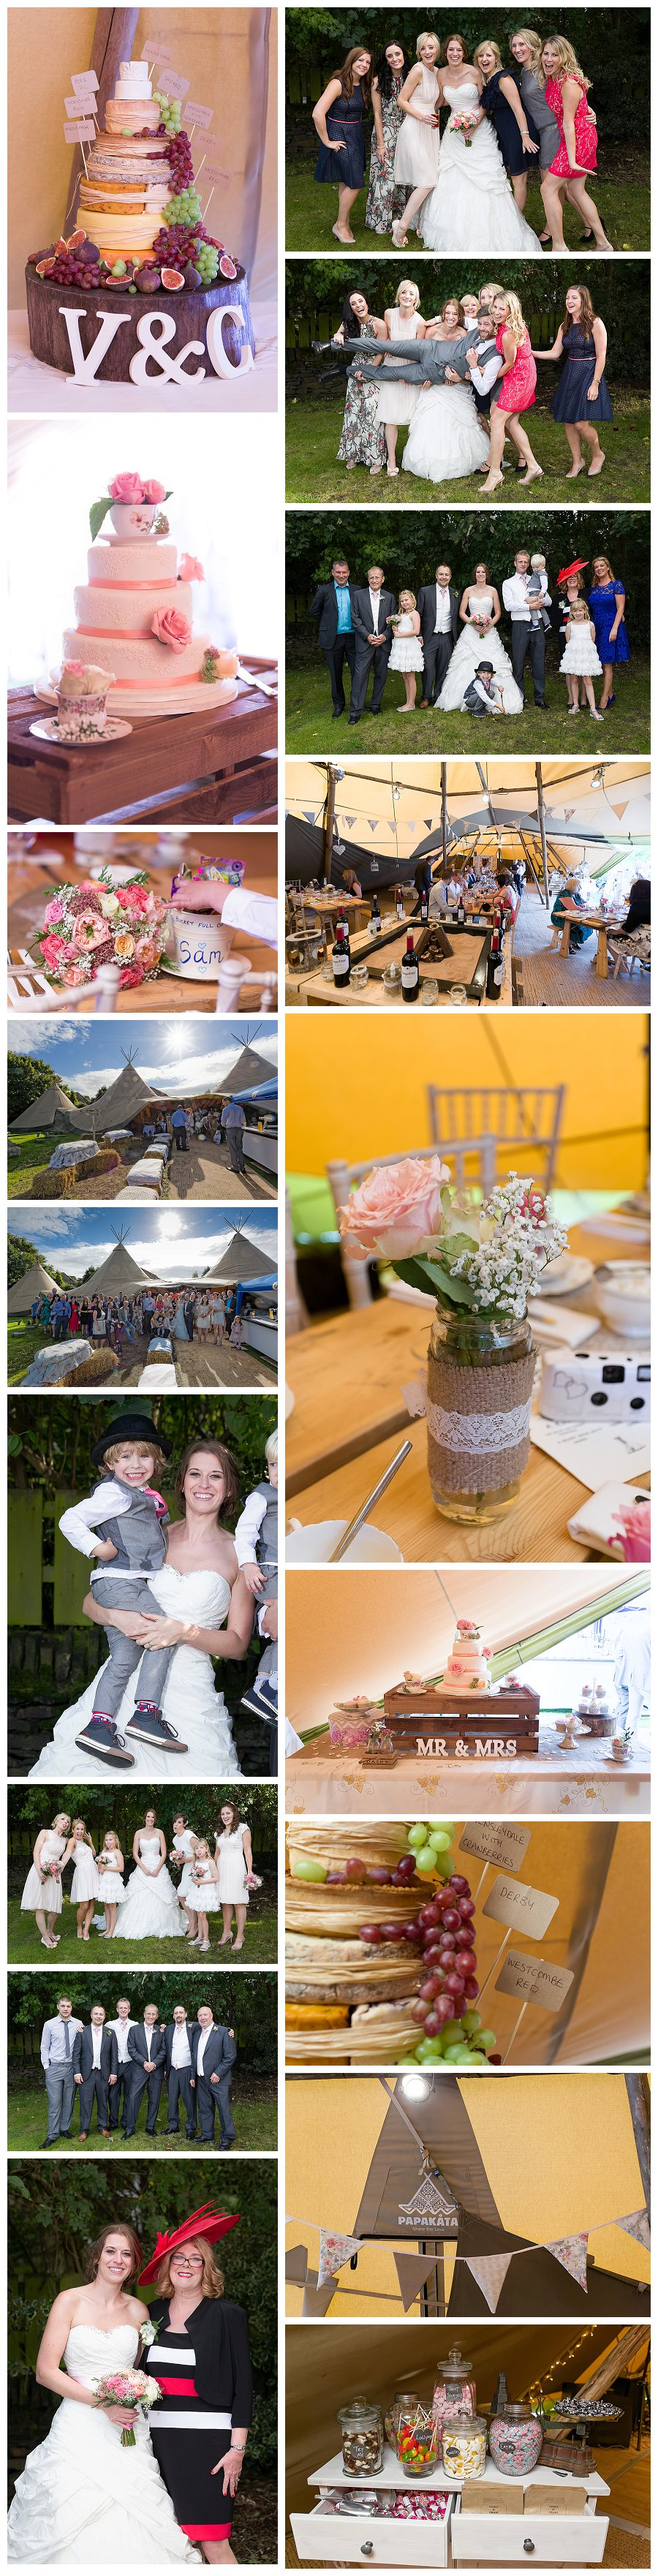 papakata tipi wedding photography, wedding photography tipis, photography Cricketer's arms Deanhouse